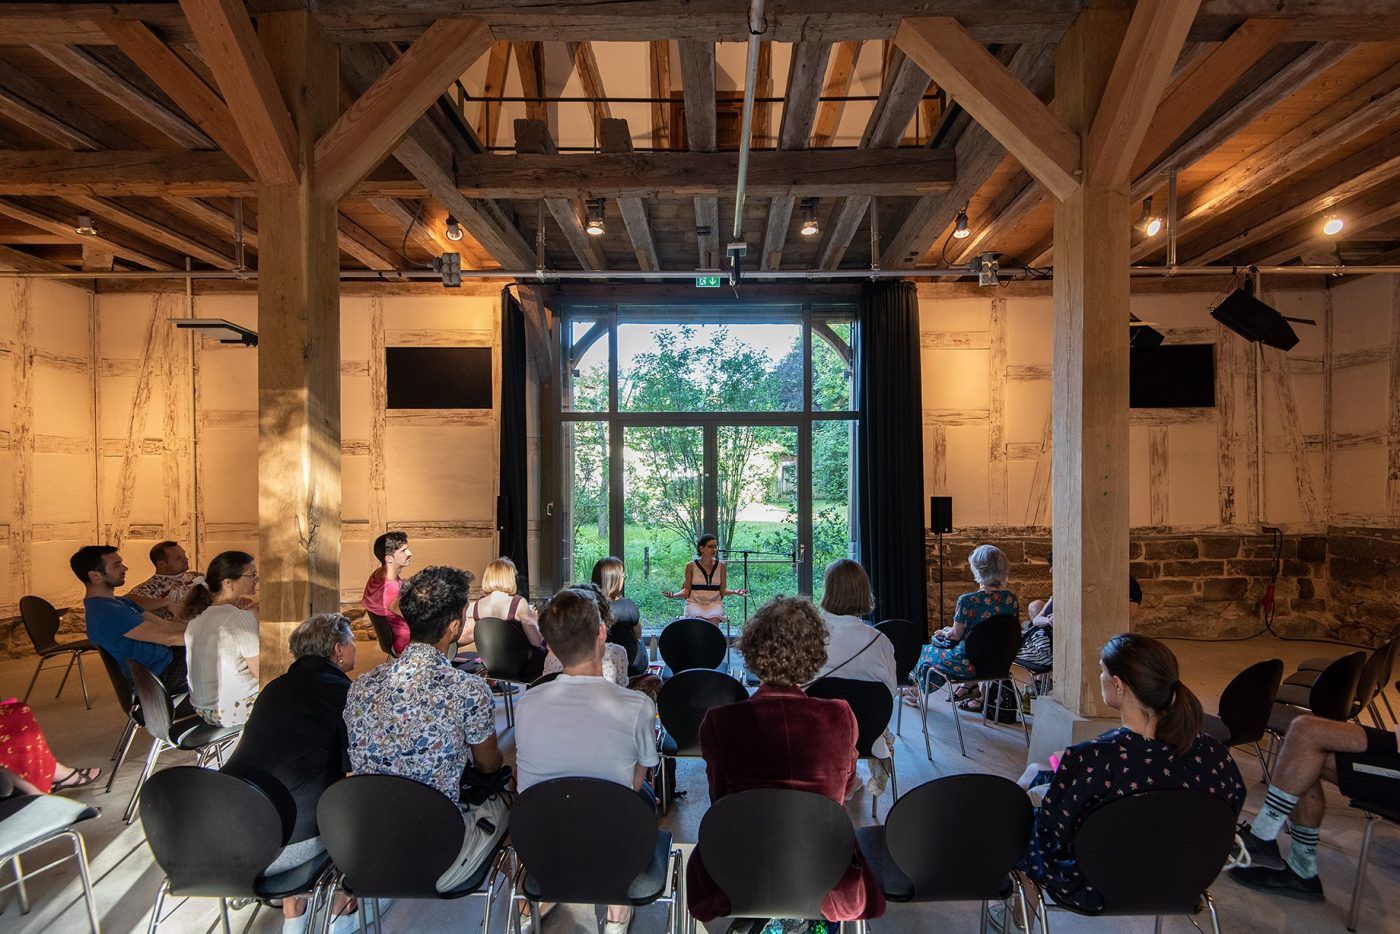 real-life lessons about residency programs - akademie schloss solitude